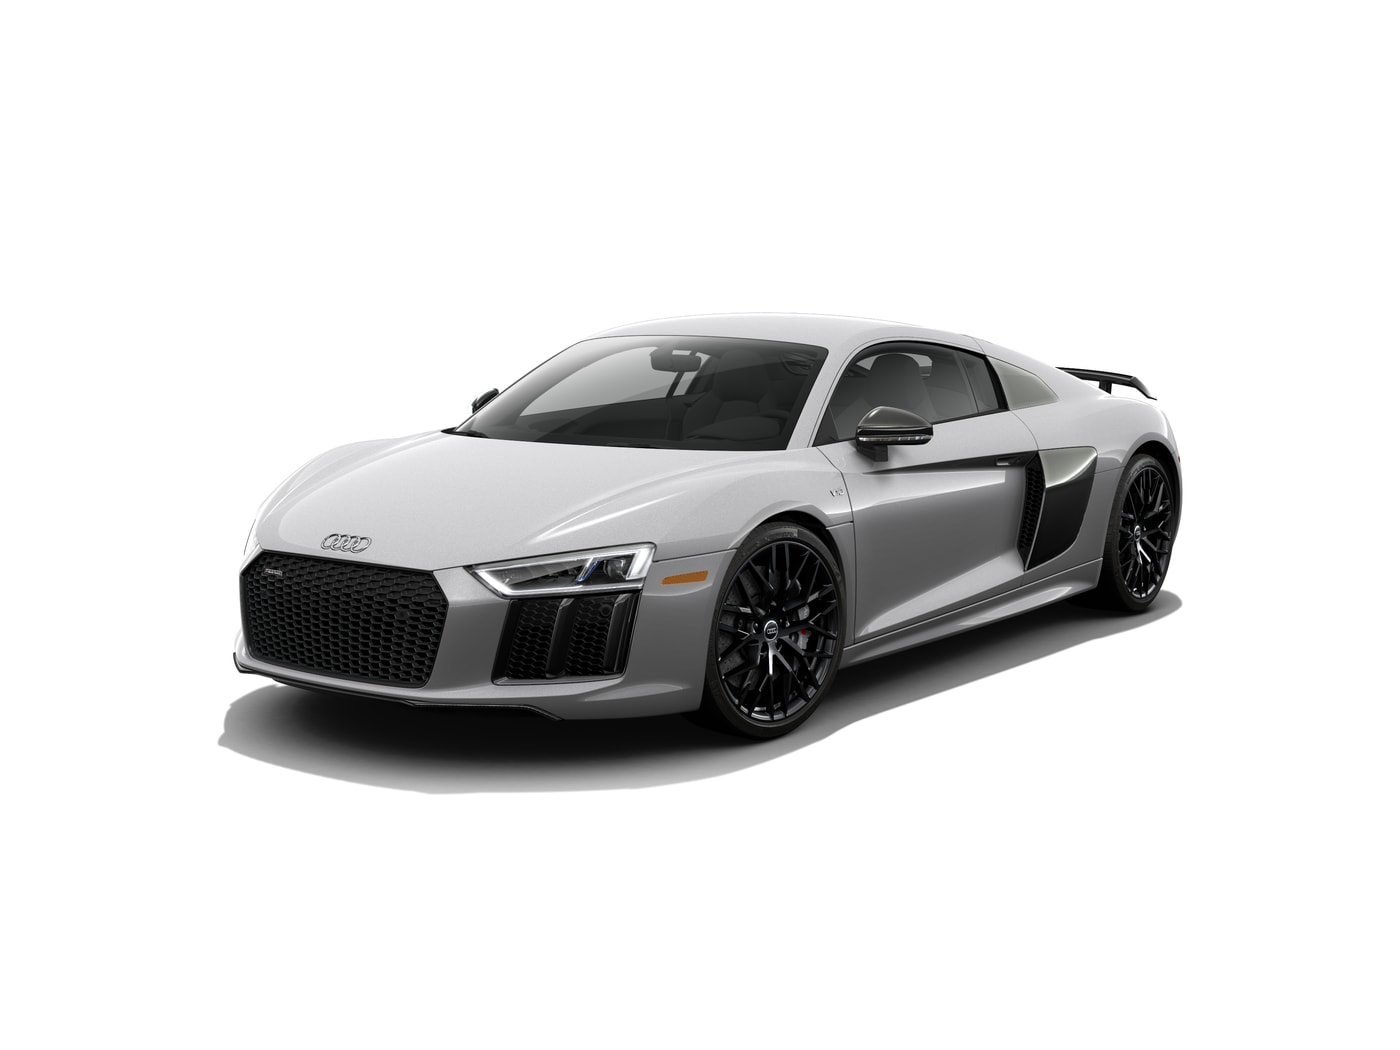 2018 Audi R8 Coupe 5.2 V10 plus Coupe